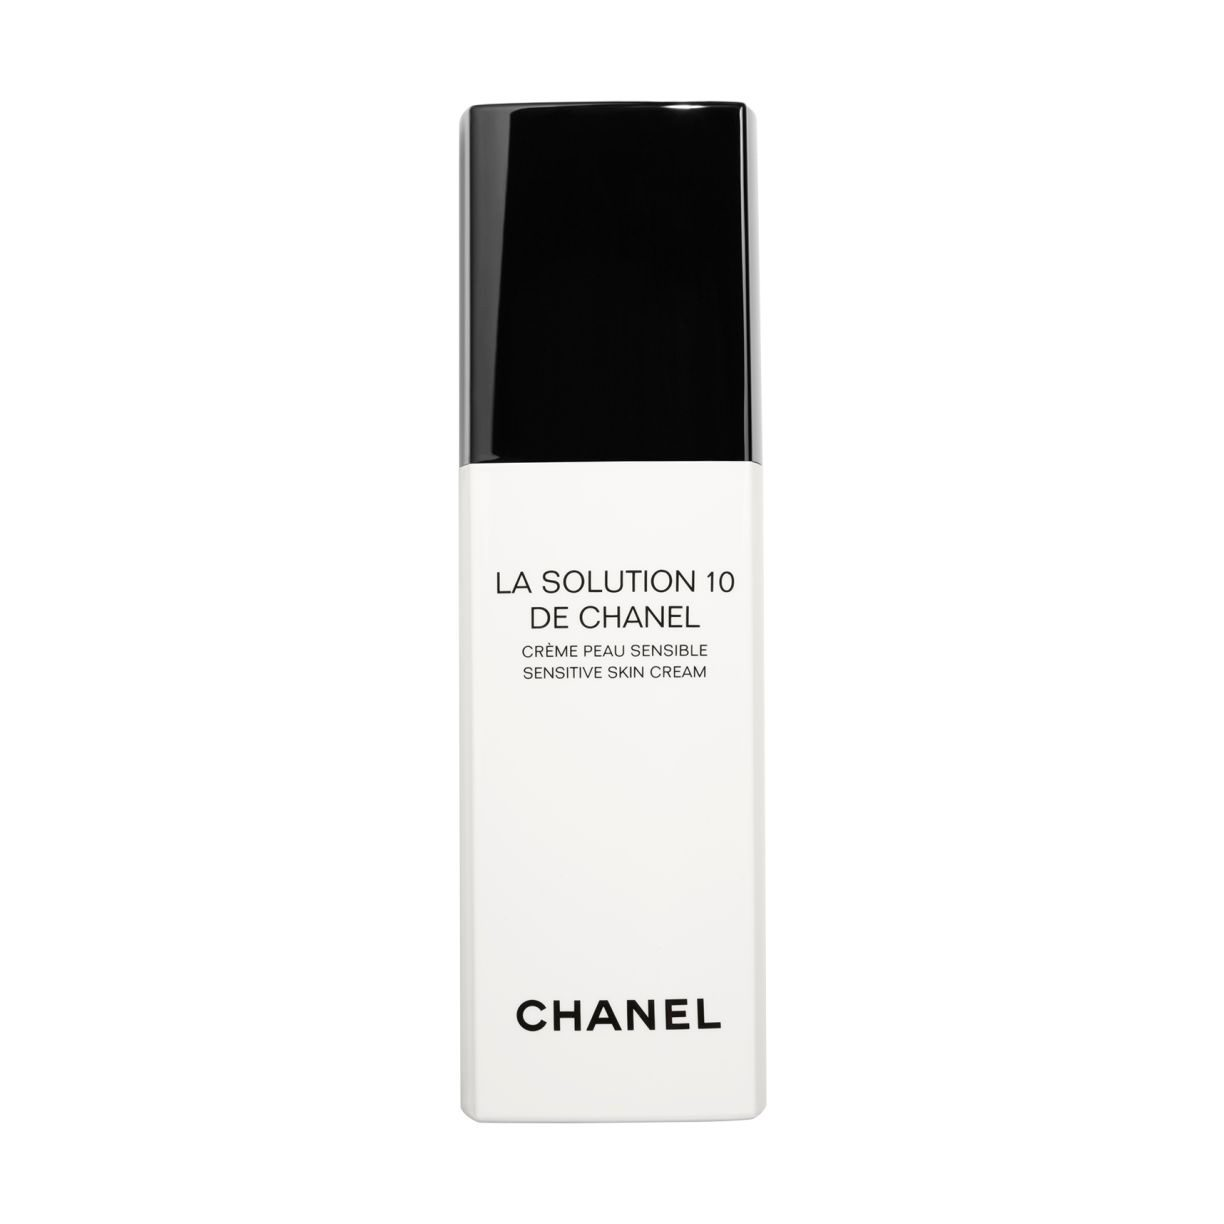 LA SOLUTION 10 DE CHANEL SENSITIVE SKIN CREAM 30ml